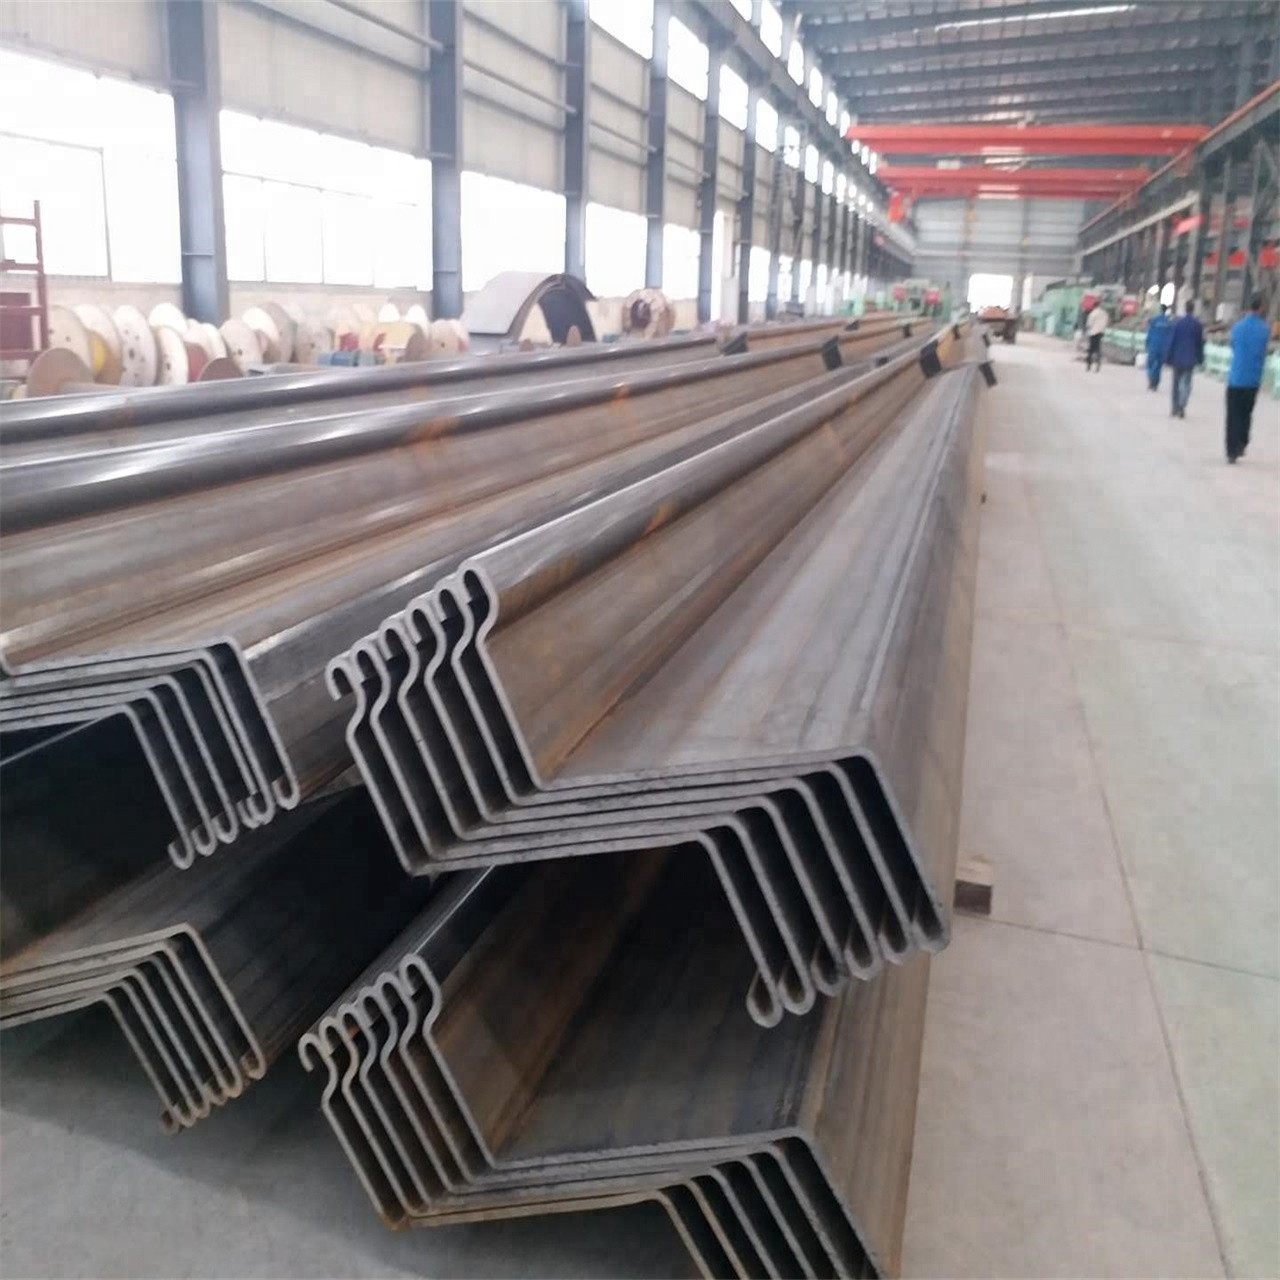 China Z Sheet Pile, China Z Sheet Pile Manufacturers and